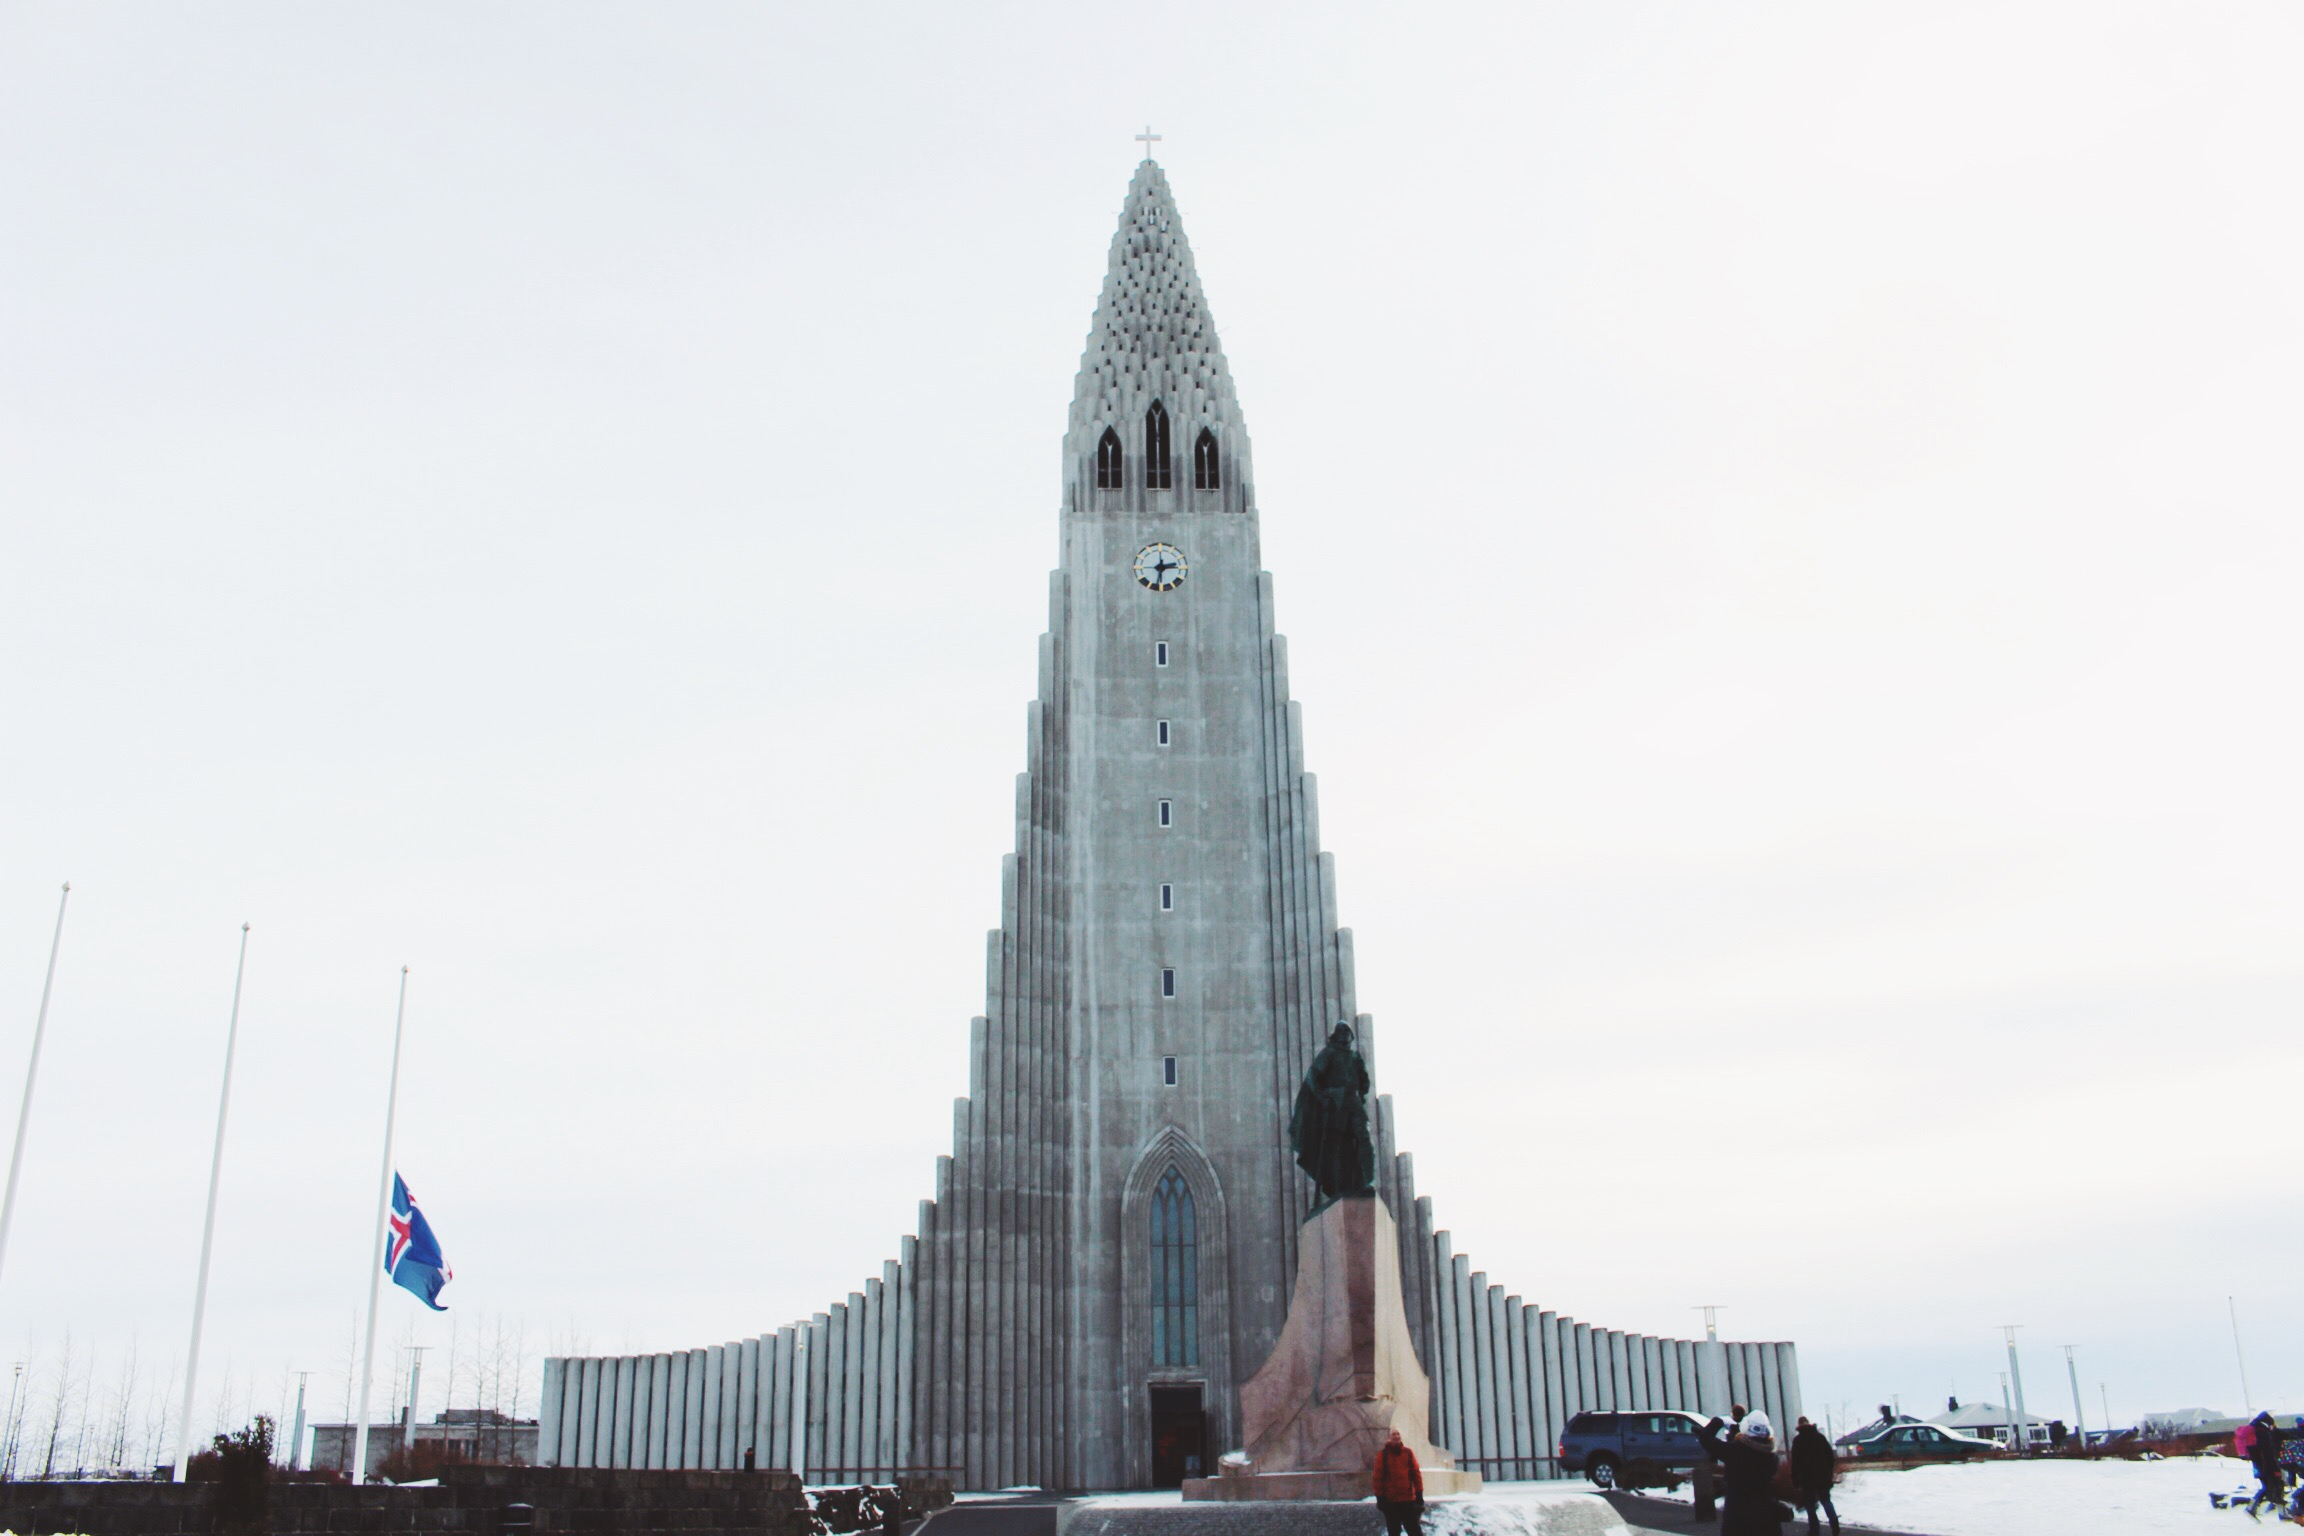 Hallgrímskirkja church: Reykjavik's main landmark and can be seen from anywhere in the city. Photo: Connected to India